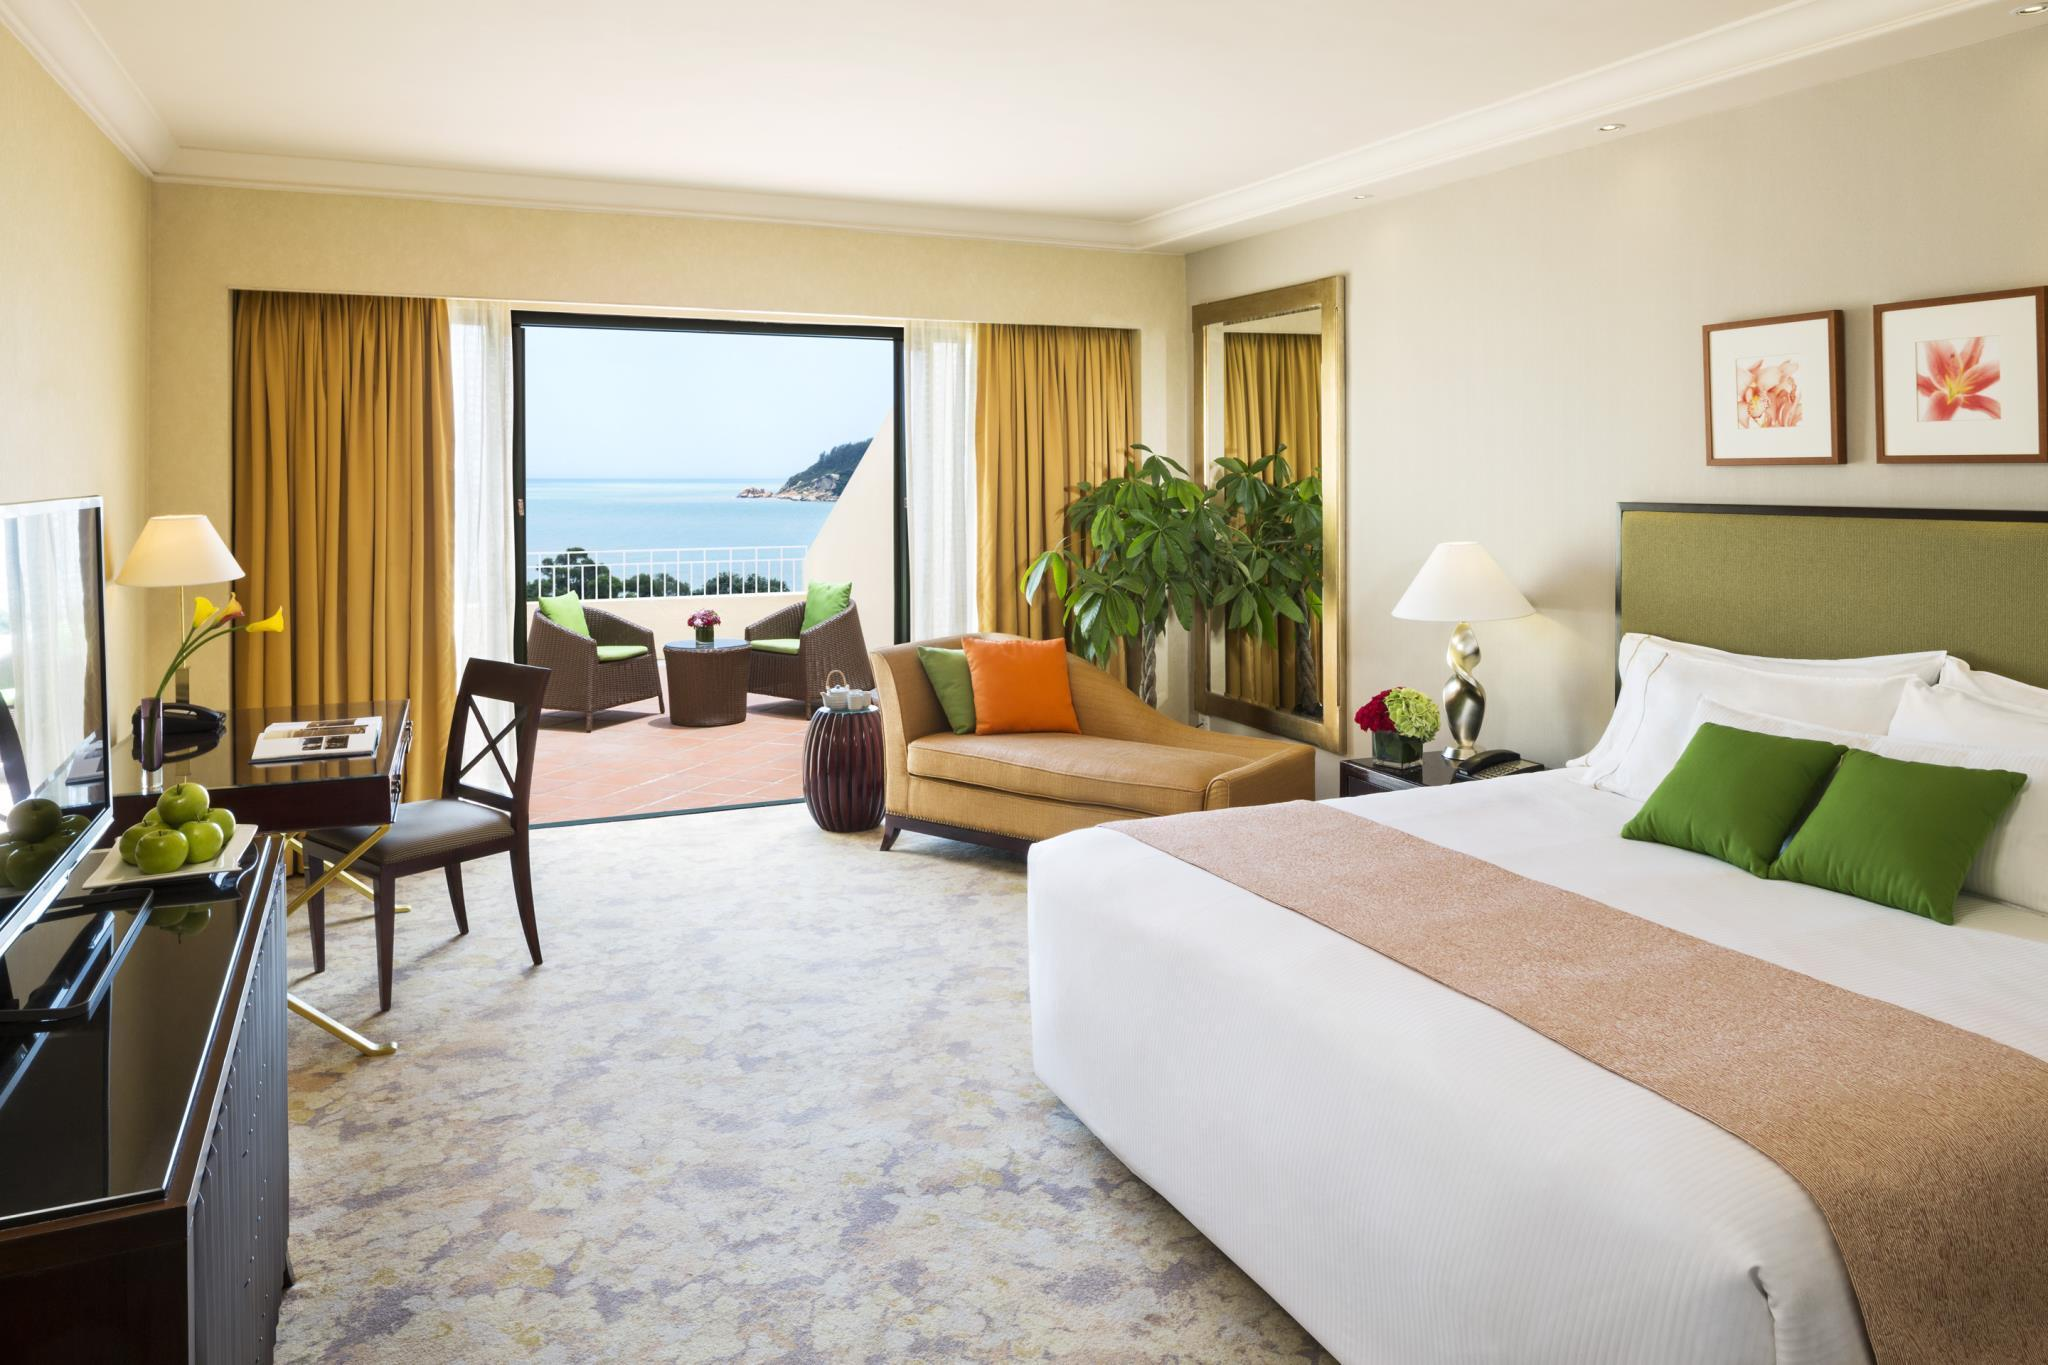 Grand Ocean View Room with King Bed